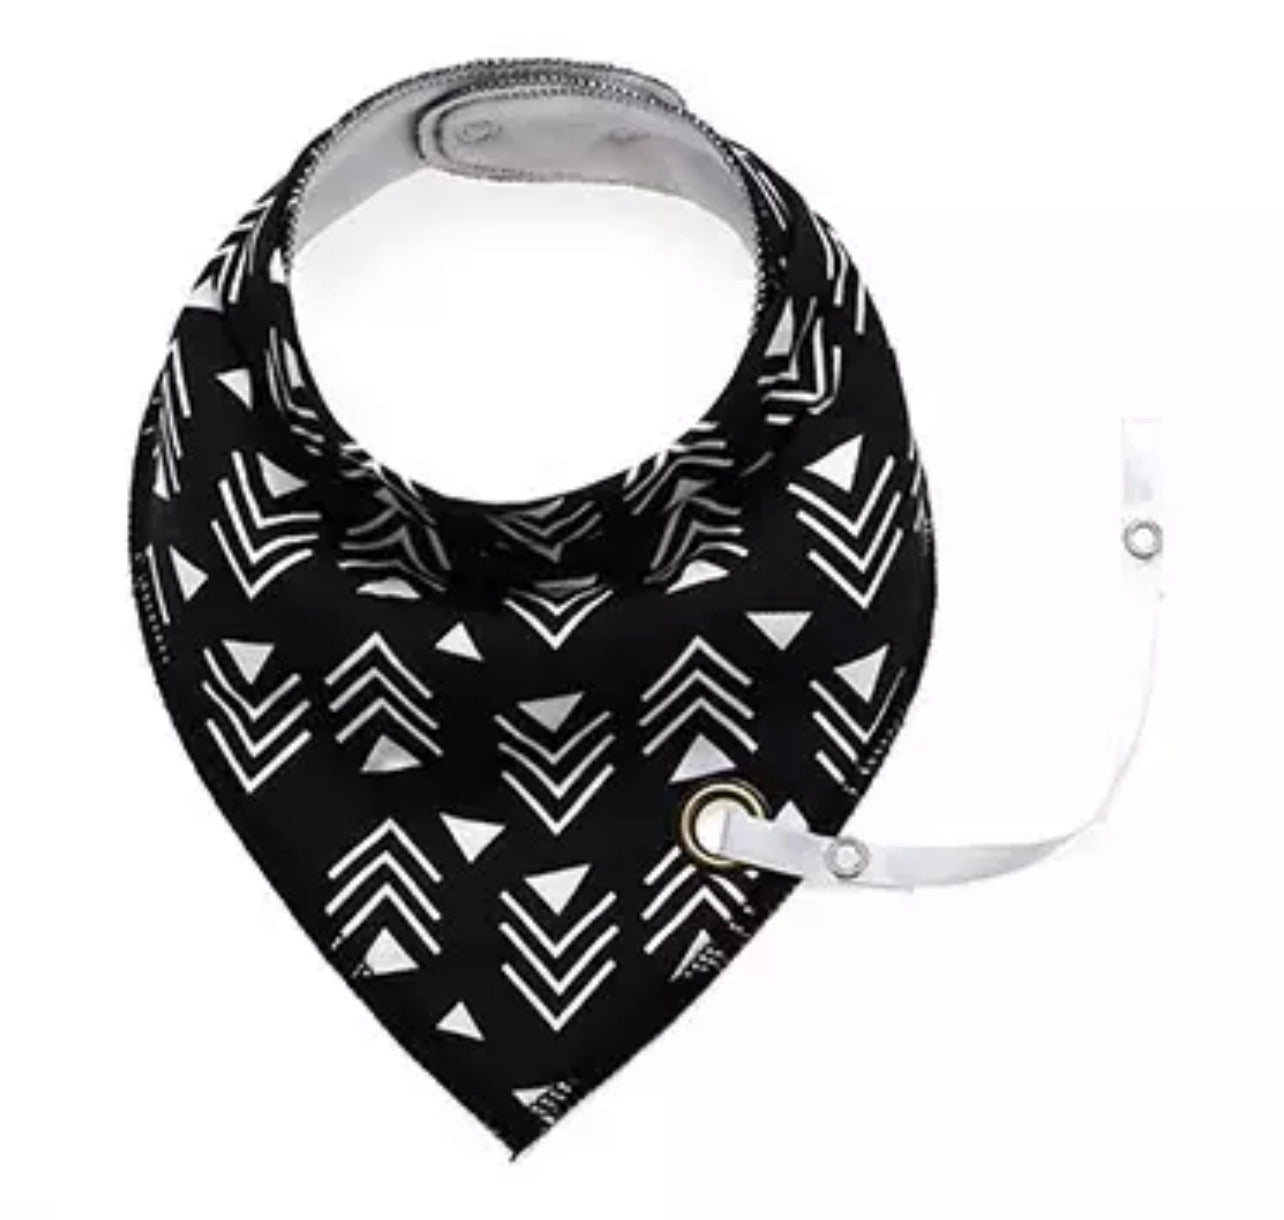 Black monochrome geometric arrow print fleece-lined cotton dribble bib with soother holder